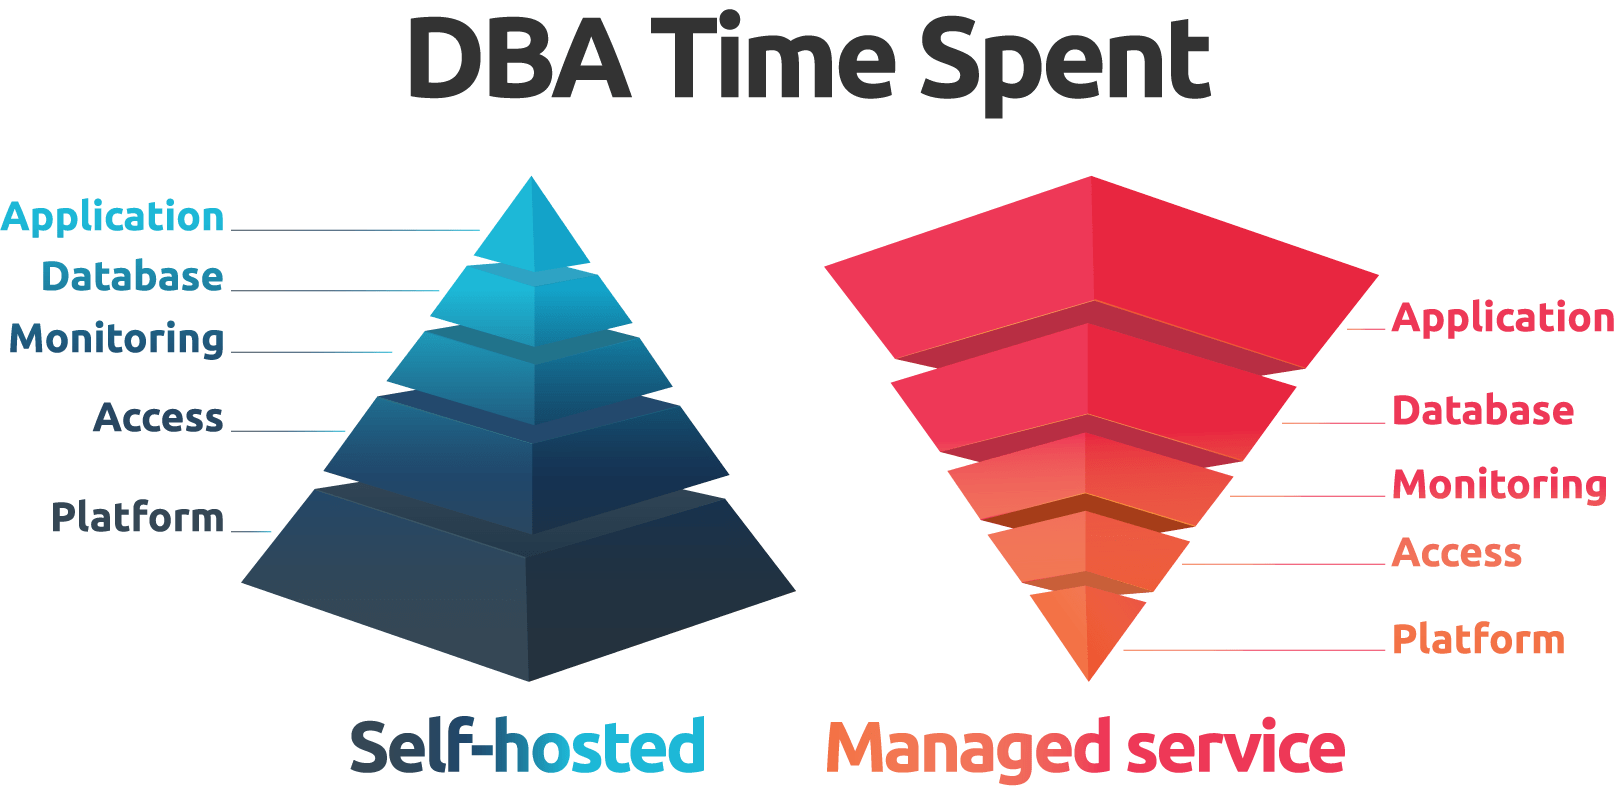 Hierarchy of DBA time spent: self-hosted vs. Managed service.